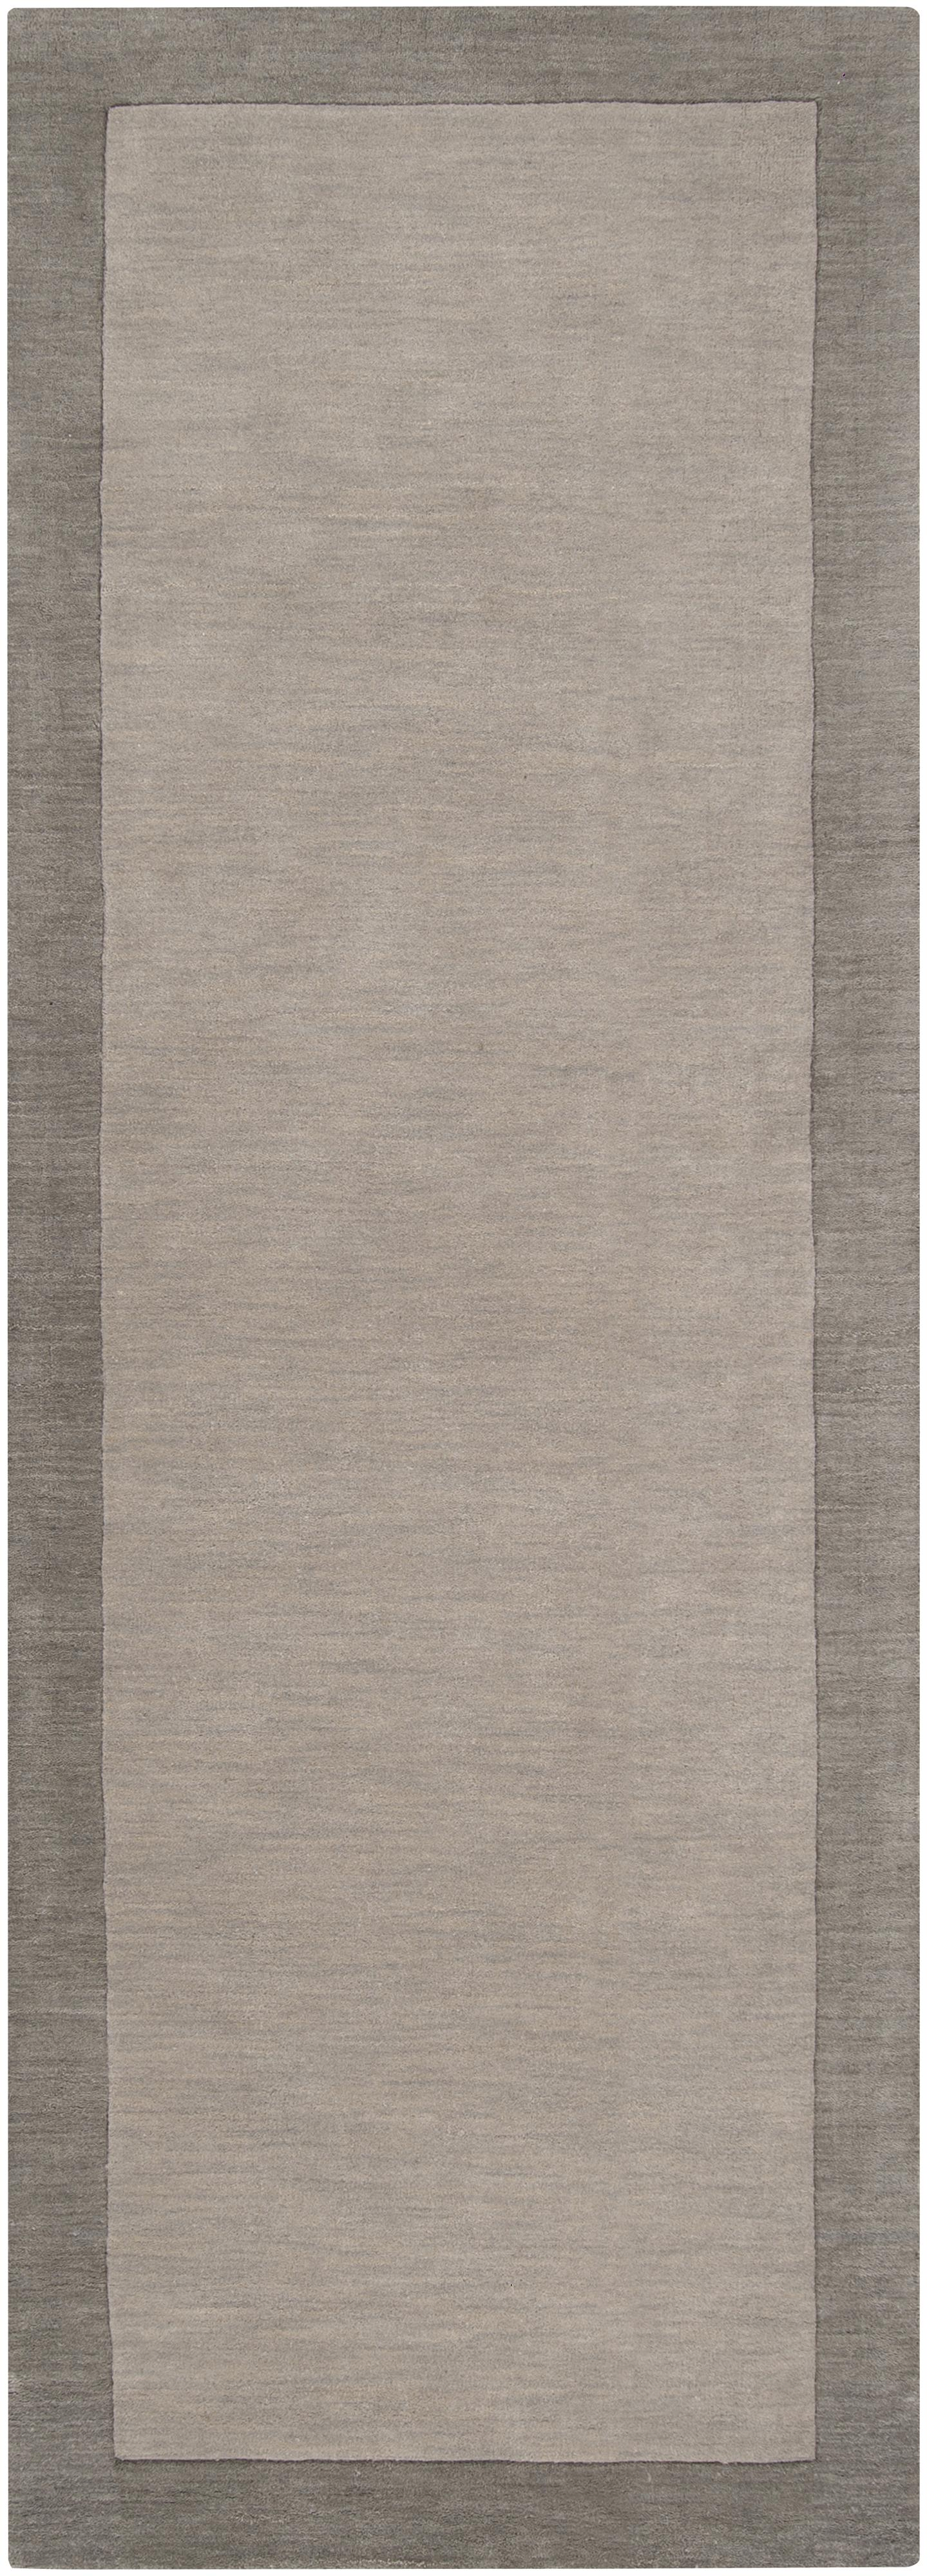 "Surya Madison Square 2'6"" x 8' - Item Number: MDS1000-268"